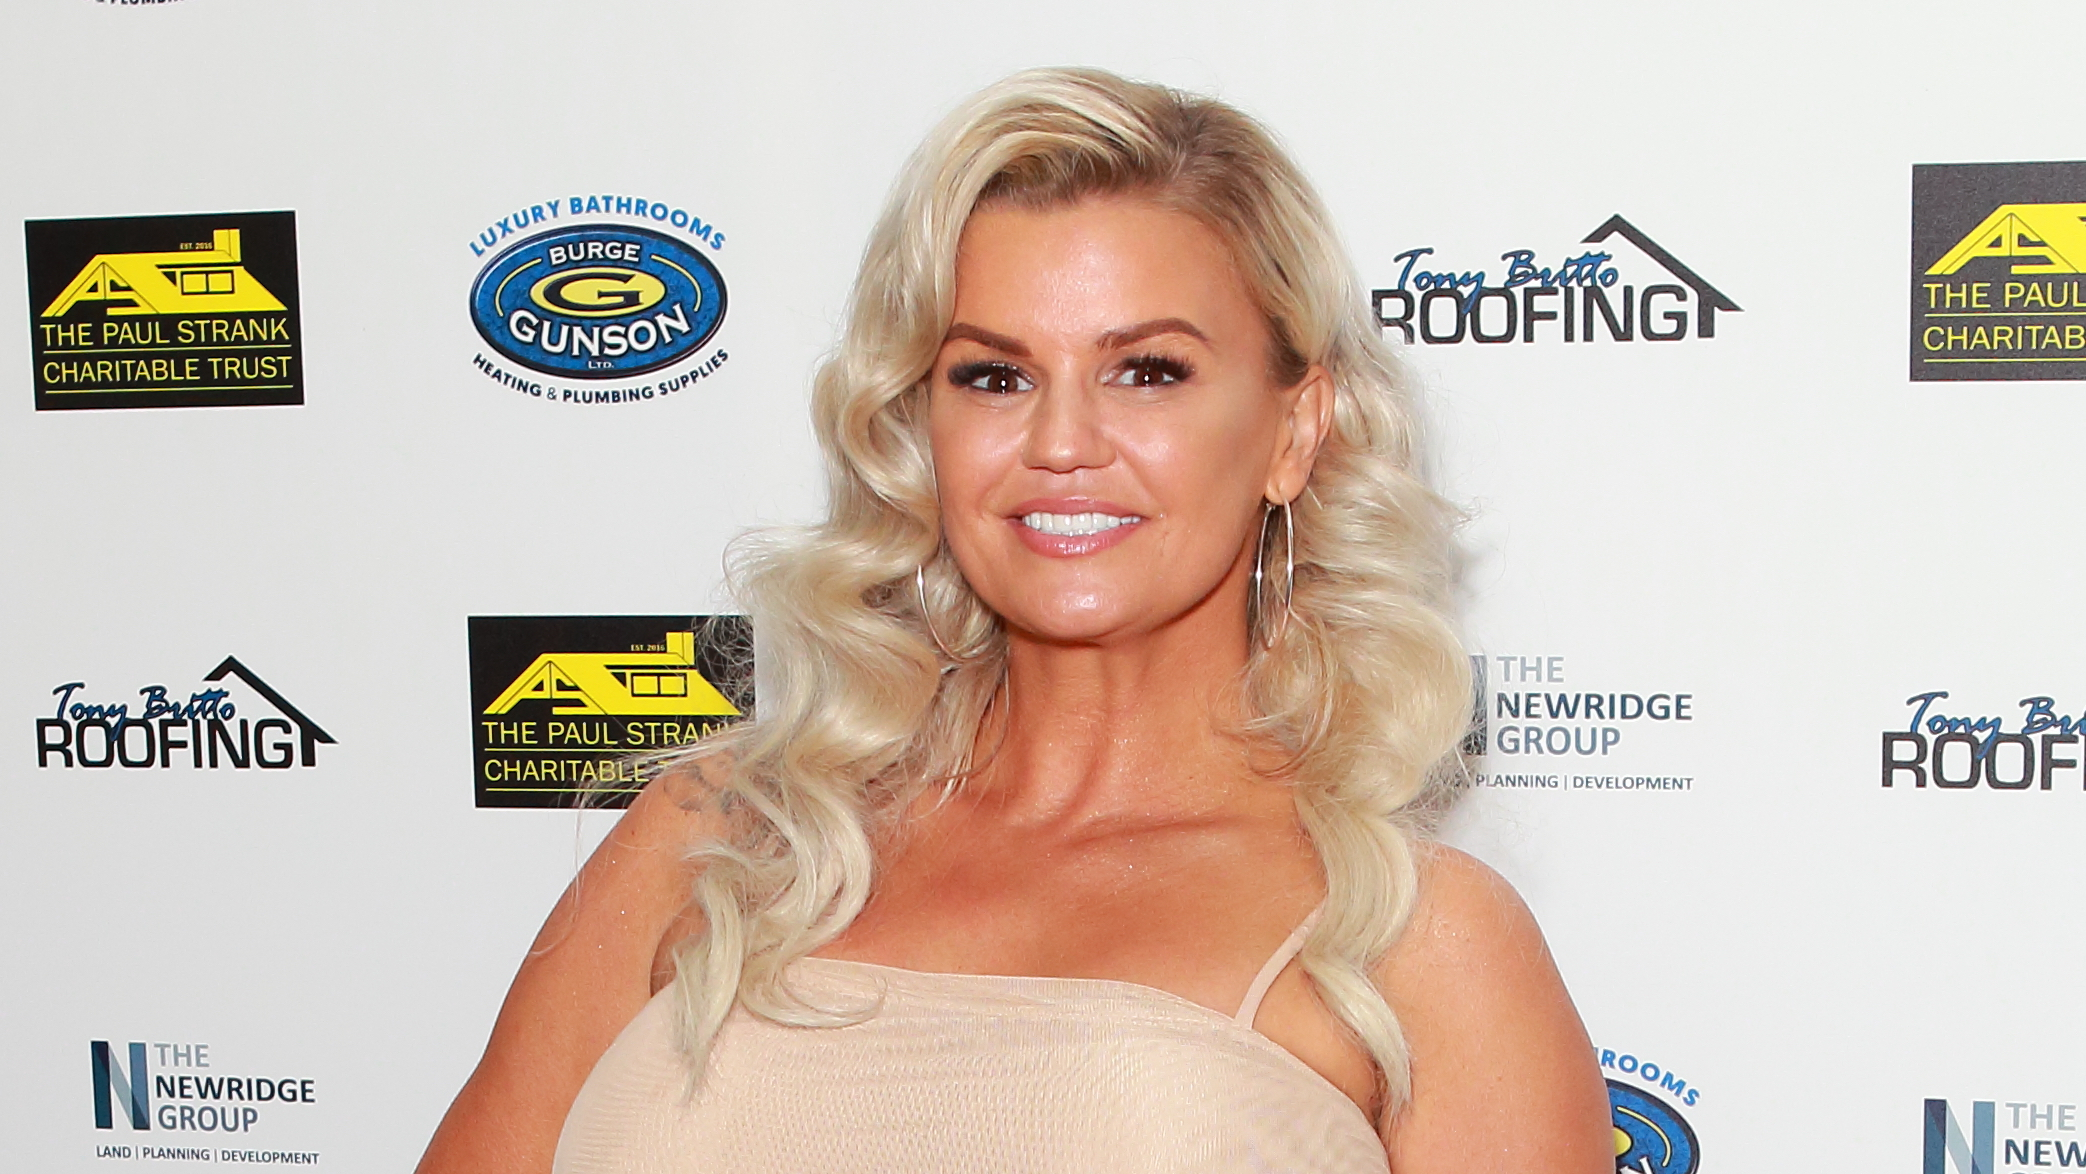 Kerry Katona shares secret to her toned new body as she wows fans with yoga workout